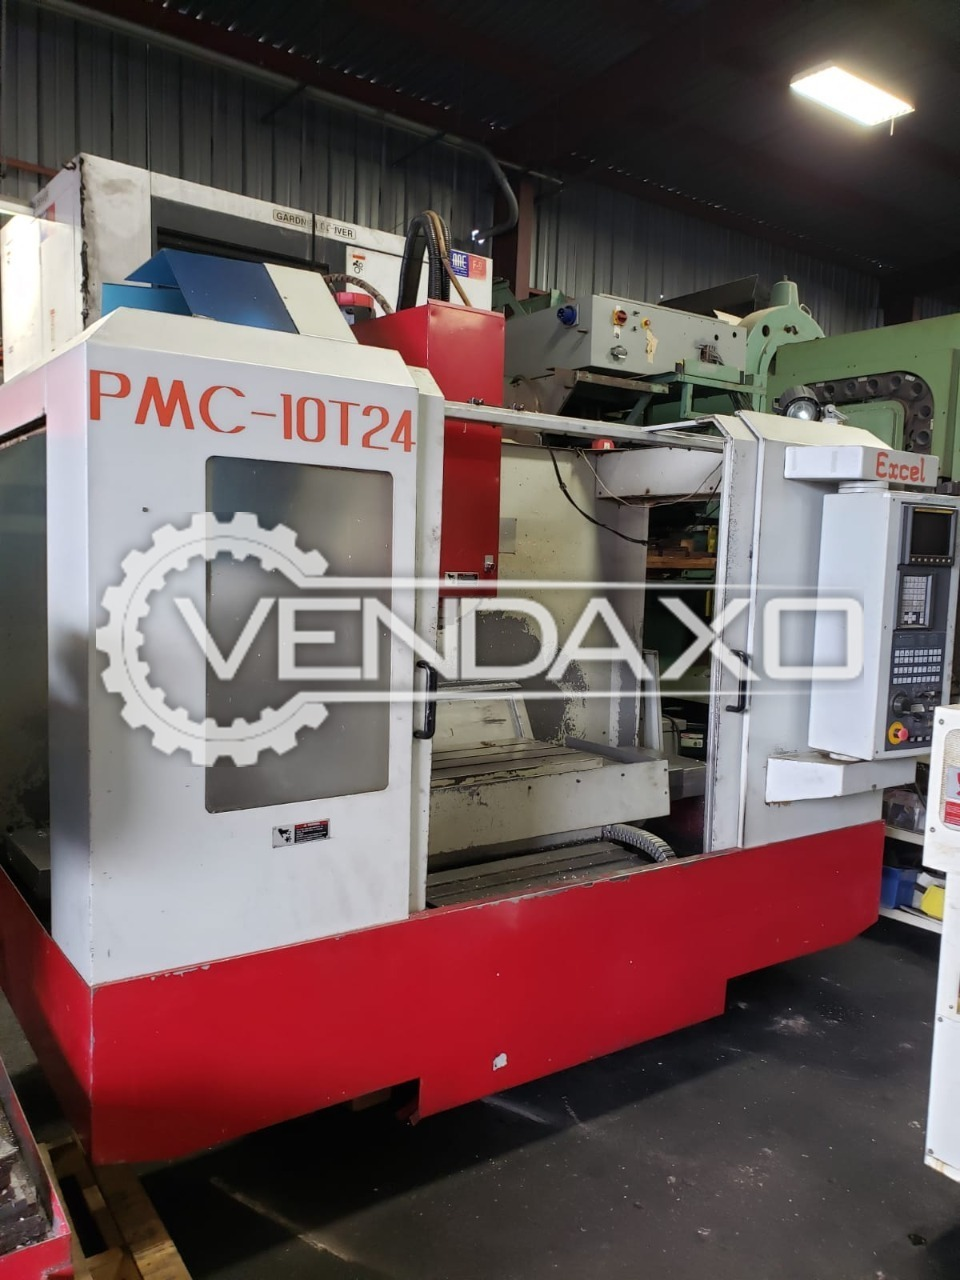 Excel PMC-10T24 CNC Vertical Machining Center - VMC - Table Size : 1100 x 500 mm